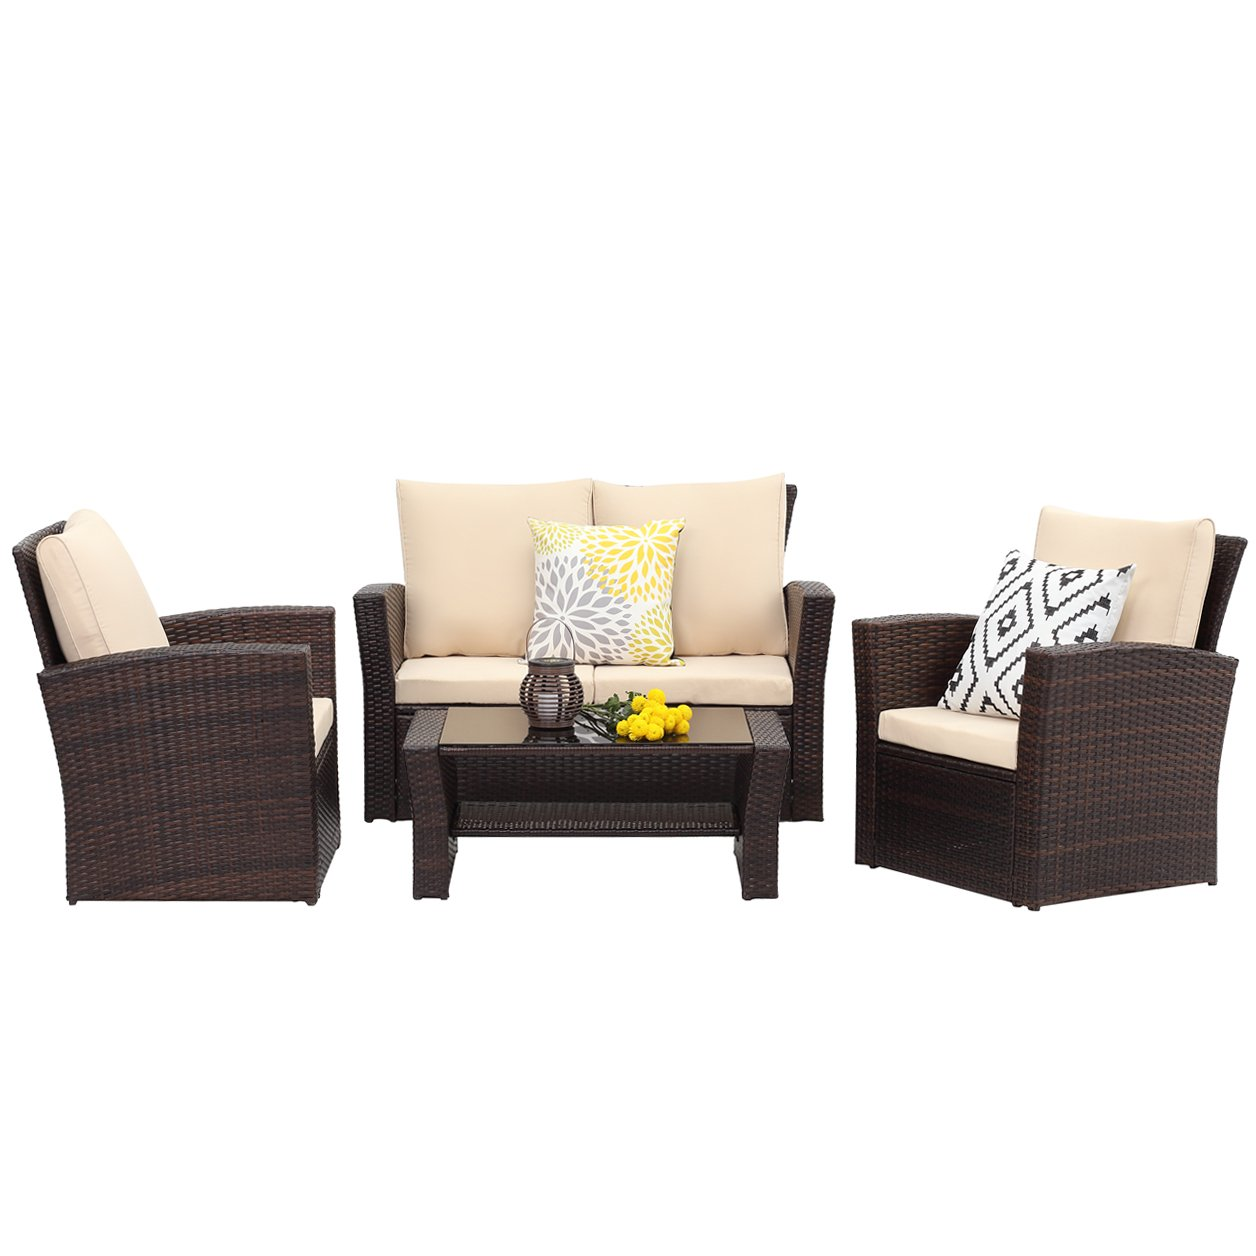 Wisteria Lane 5 Piece Outdoor Patio Furniture Sets Wicker